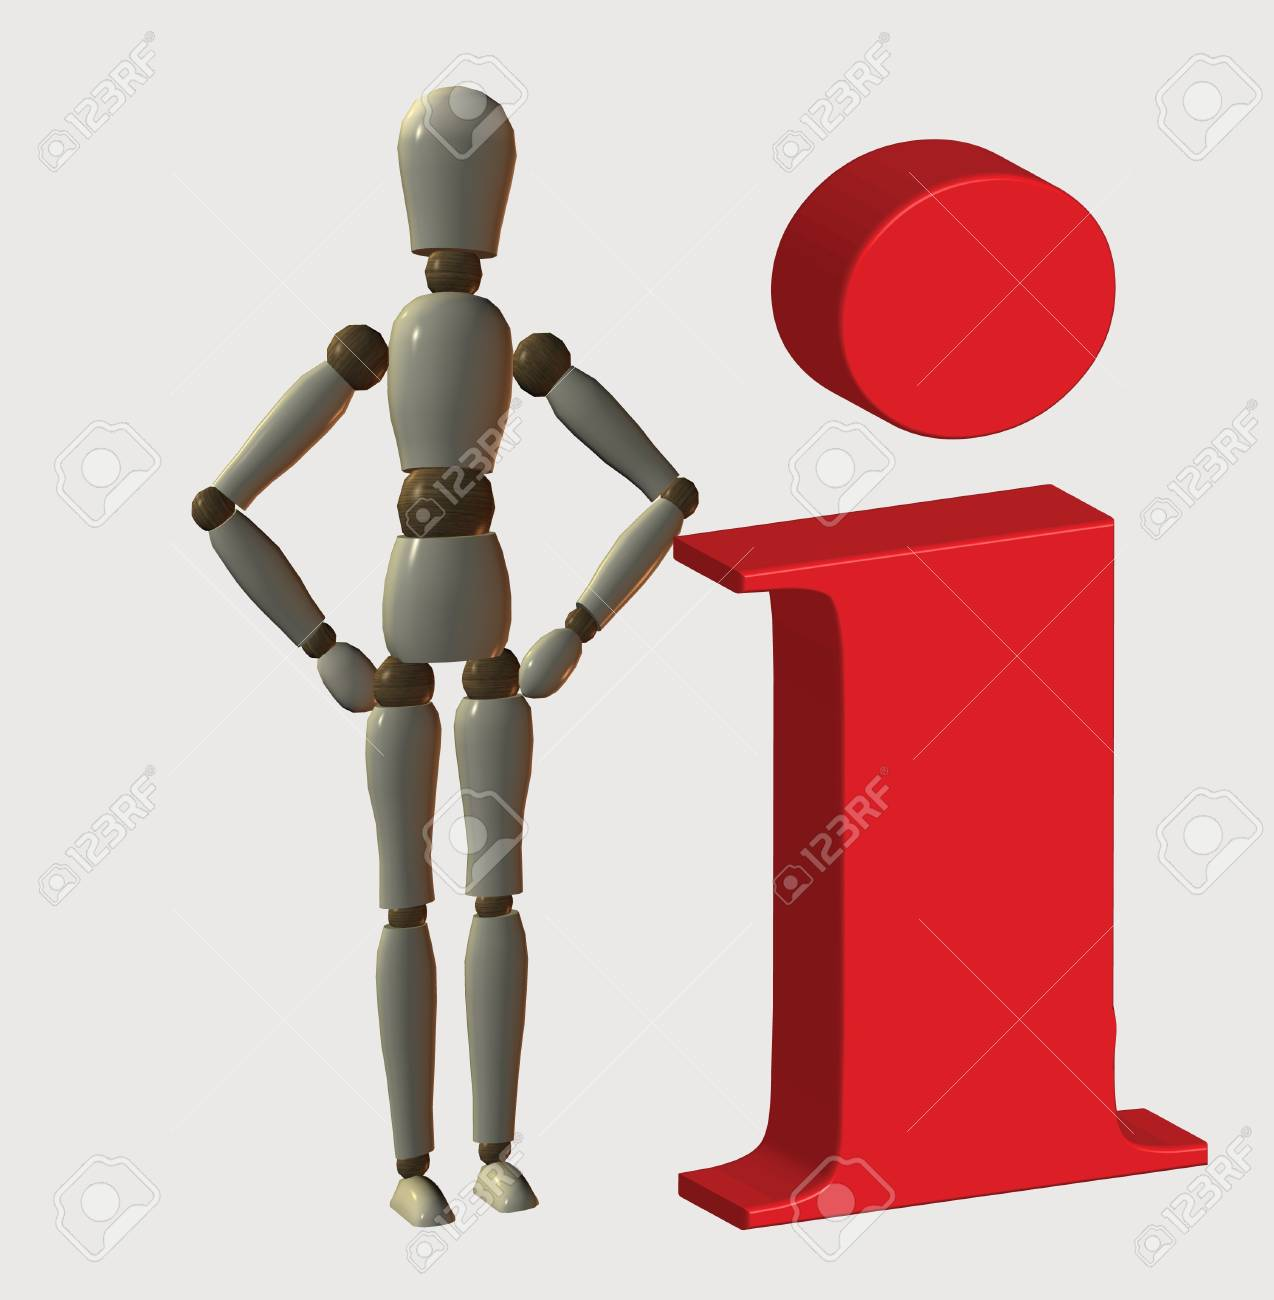 Information icon with mannequin Stock Photo - 13126375